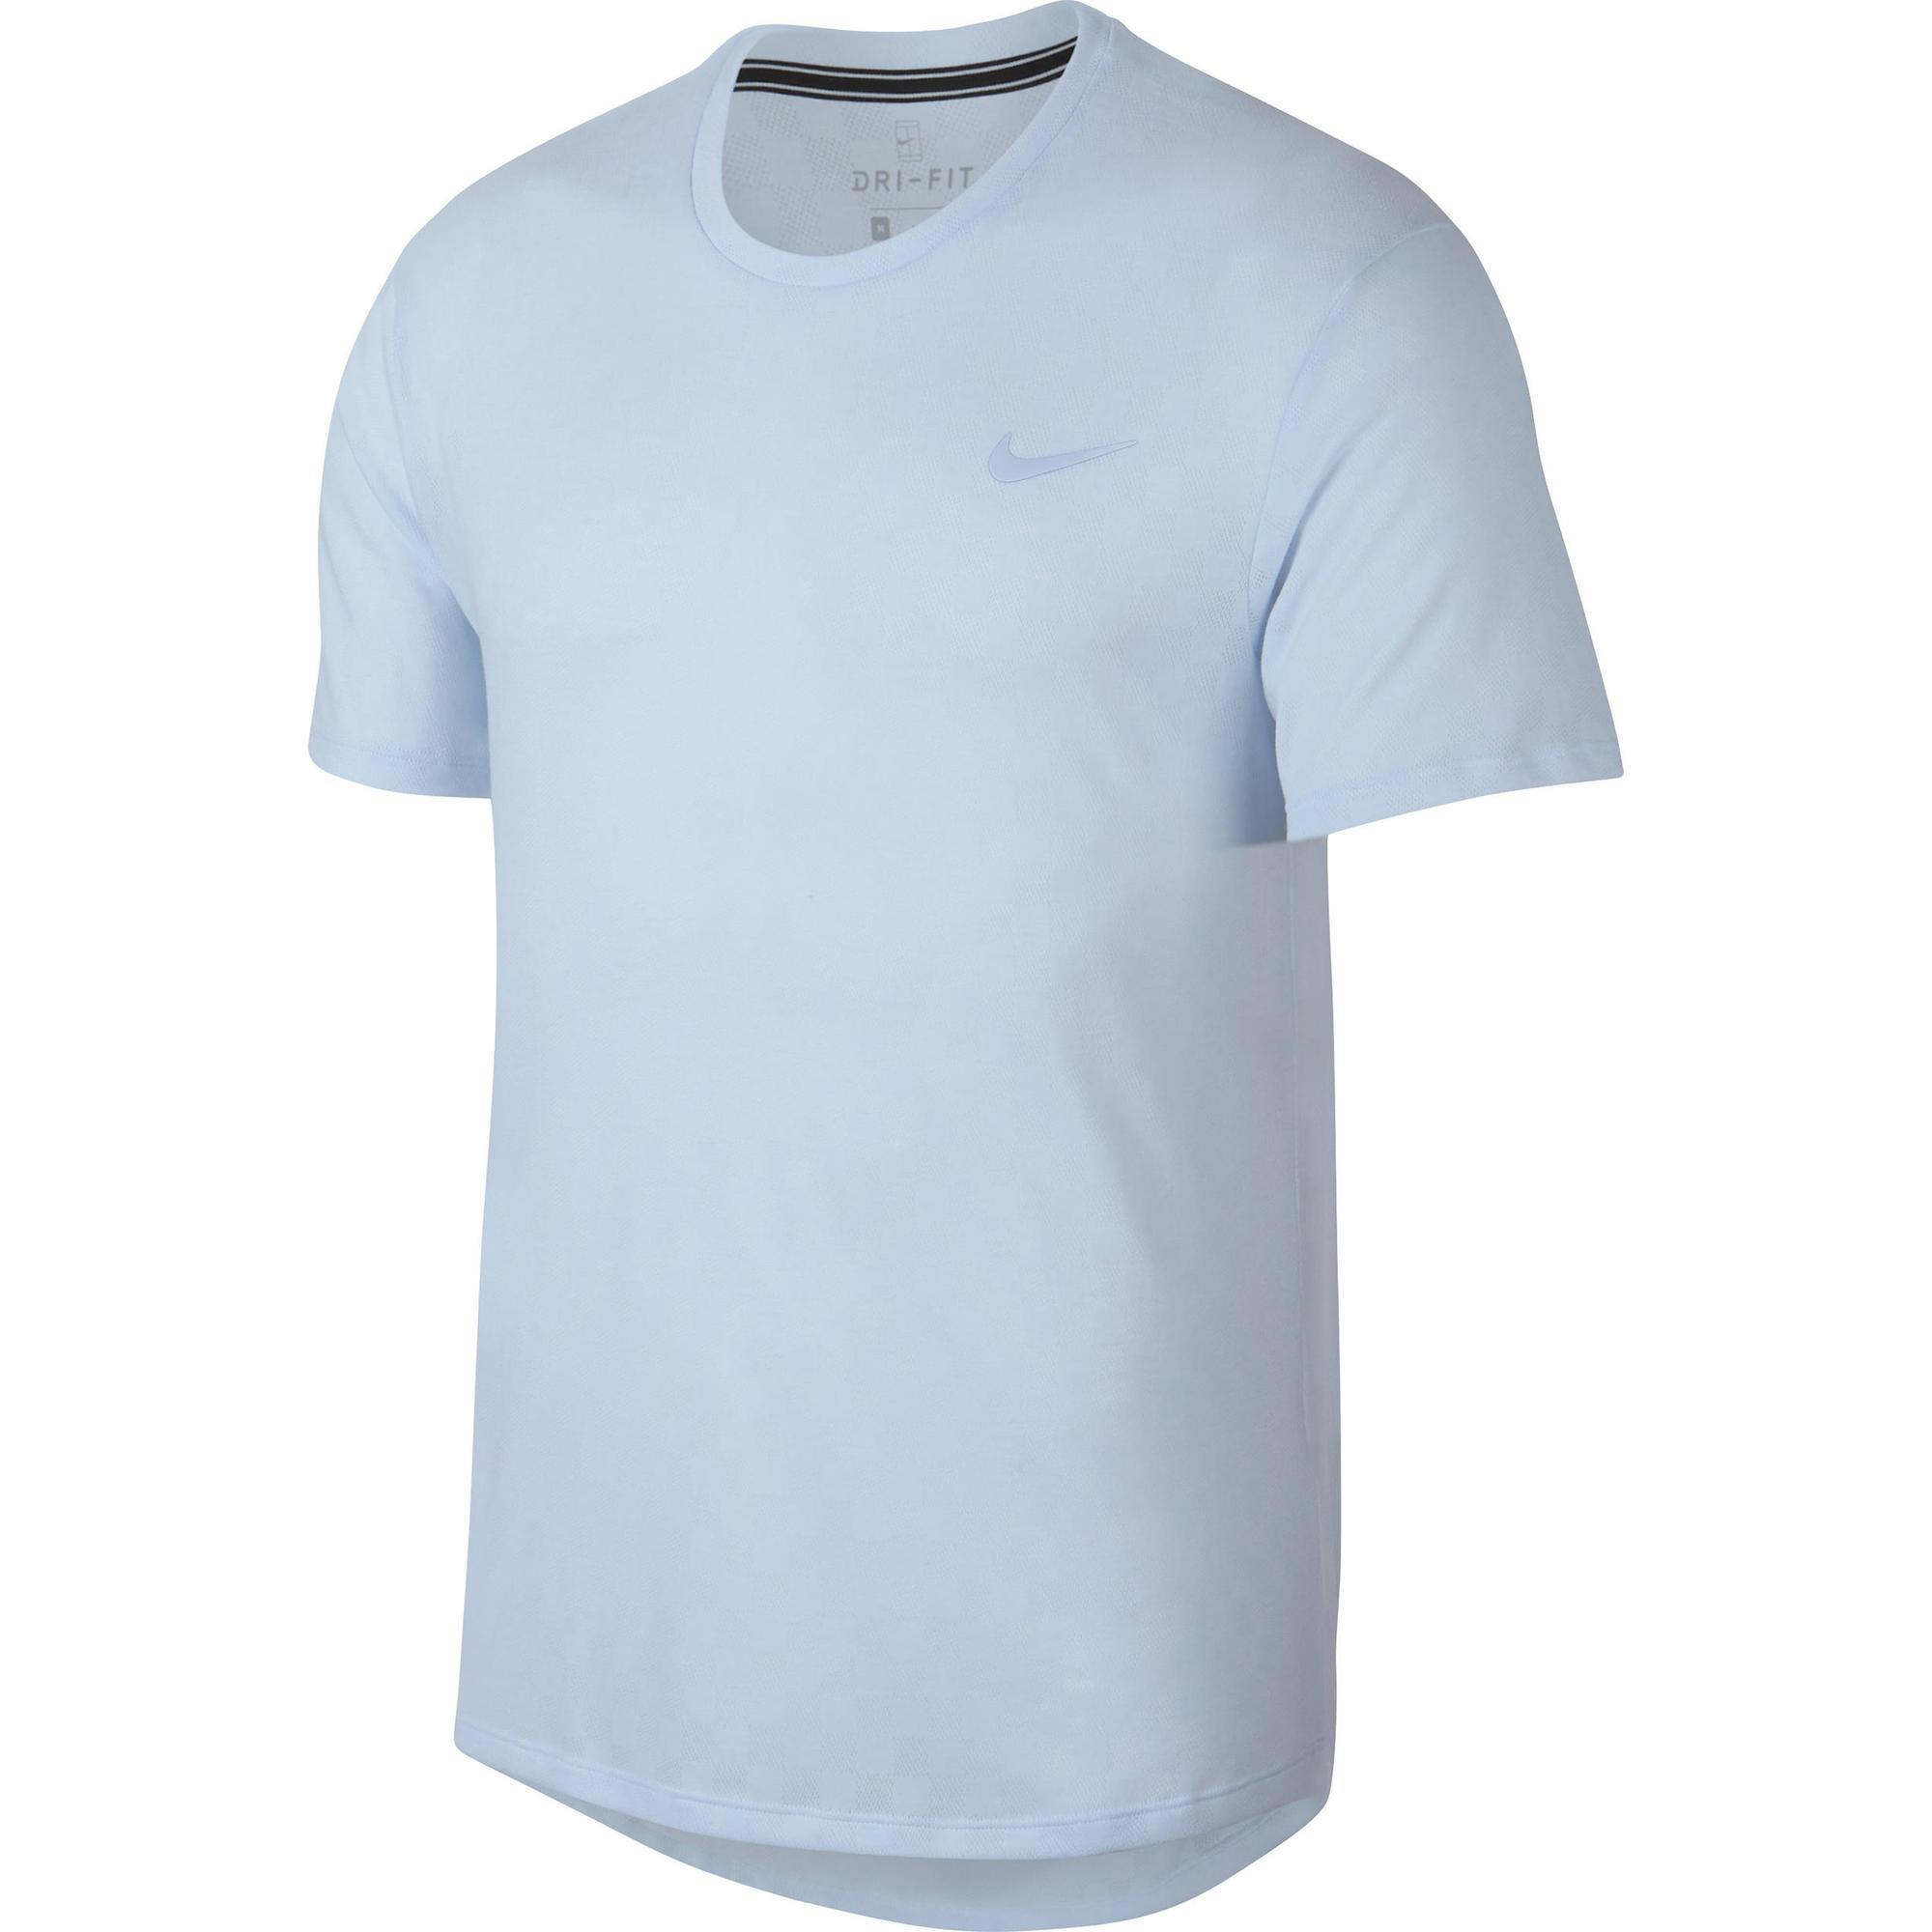 1cd11f82c4e Tenniskledij | Decathlon